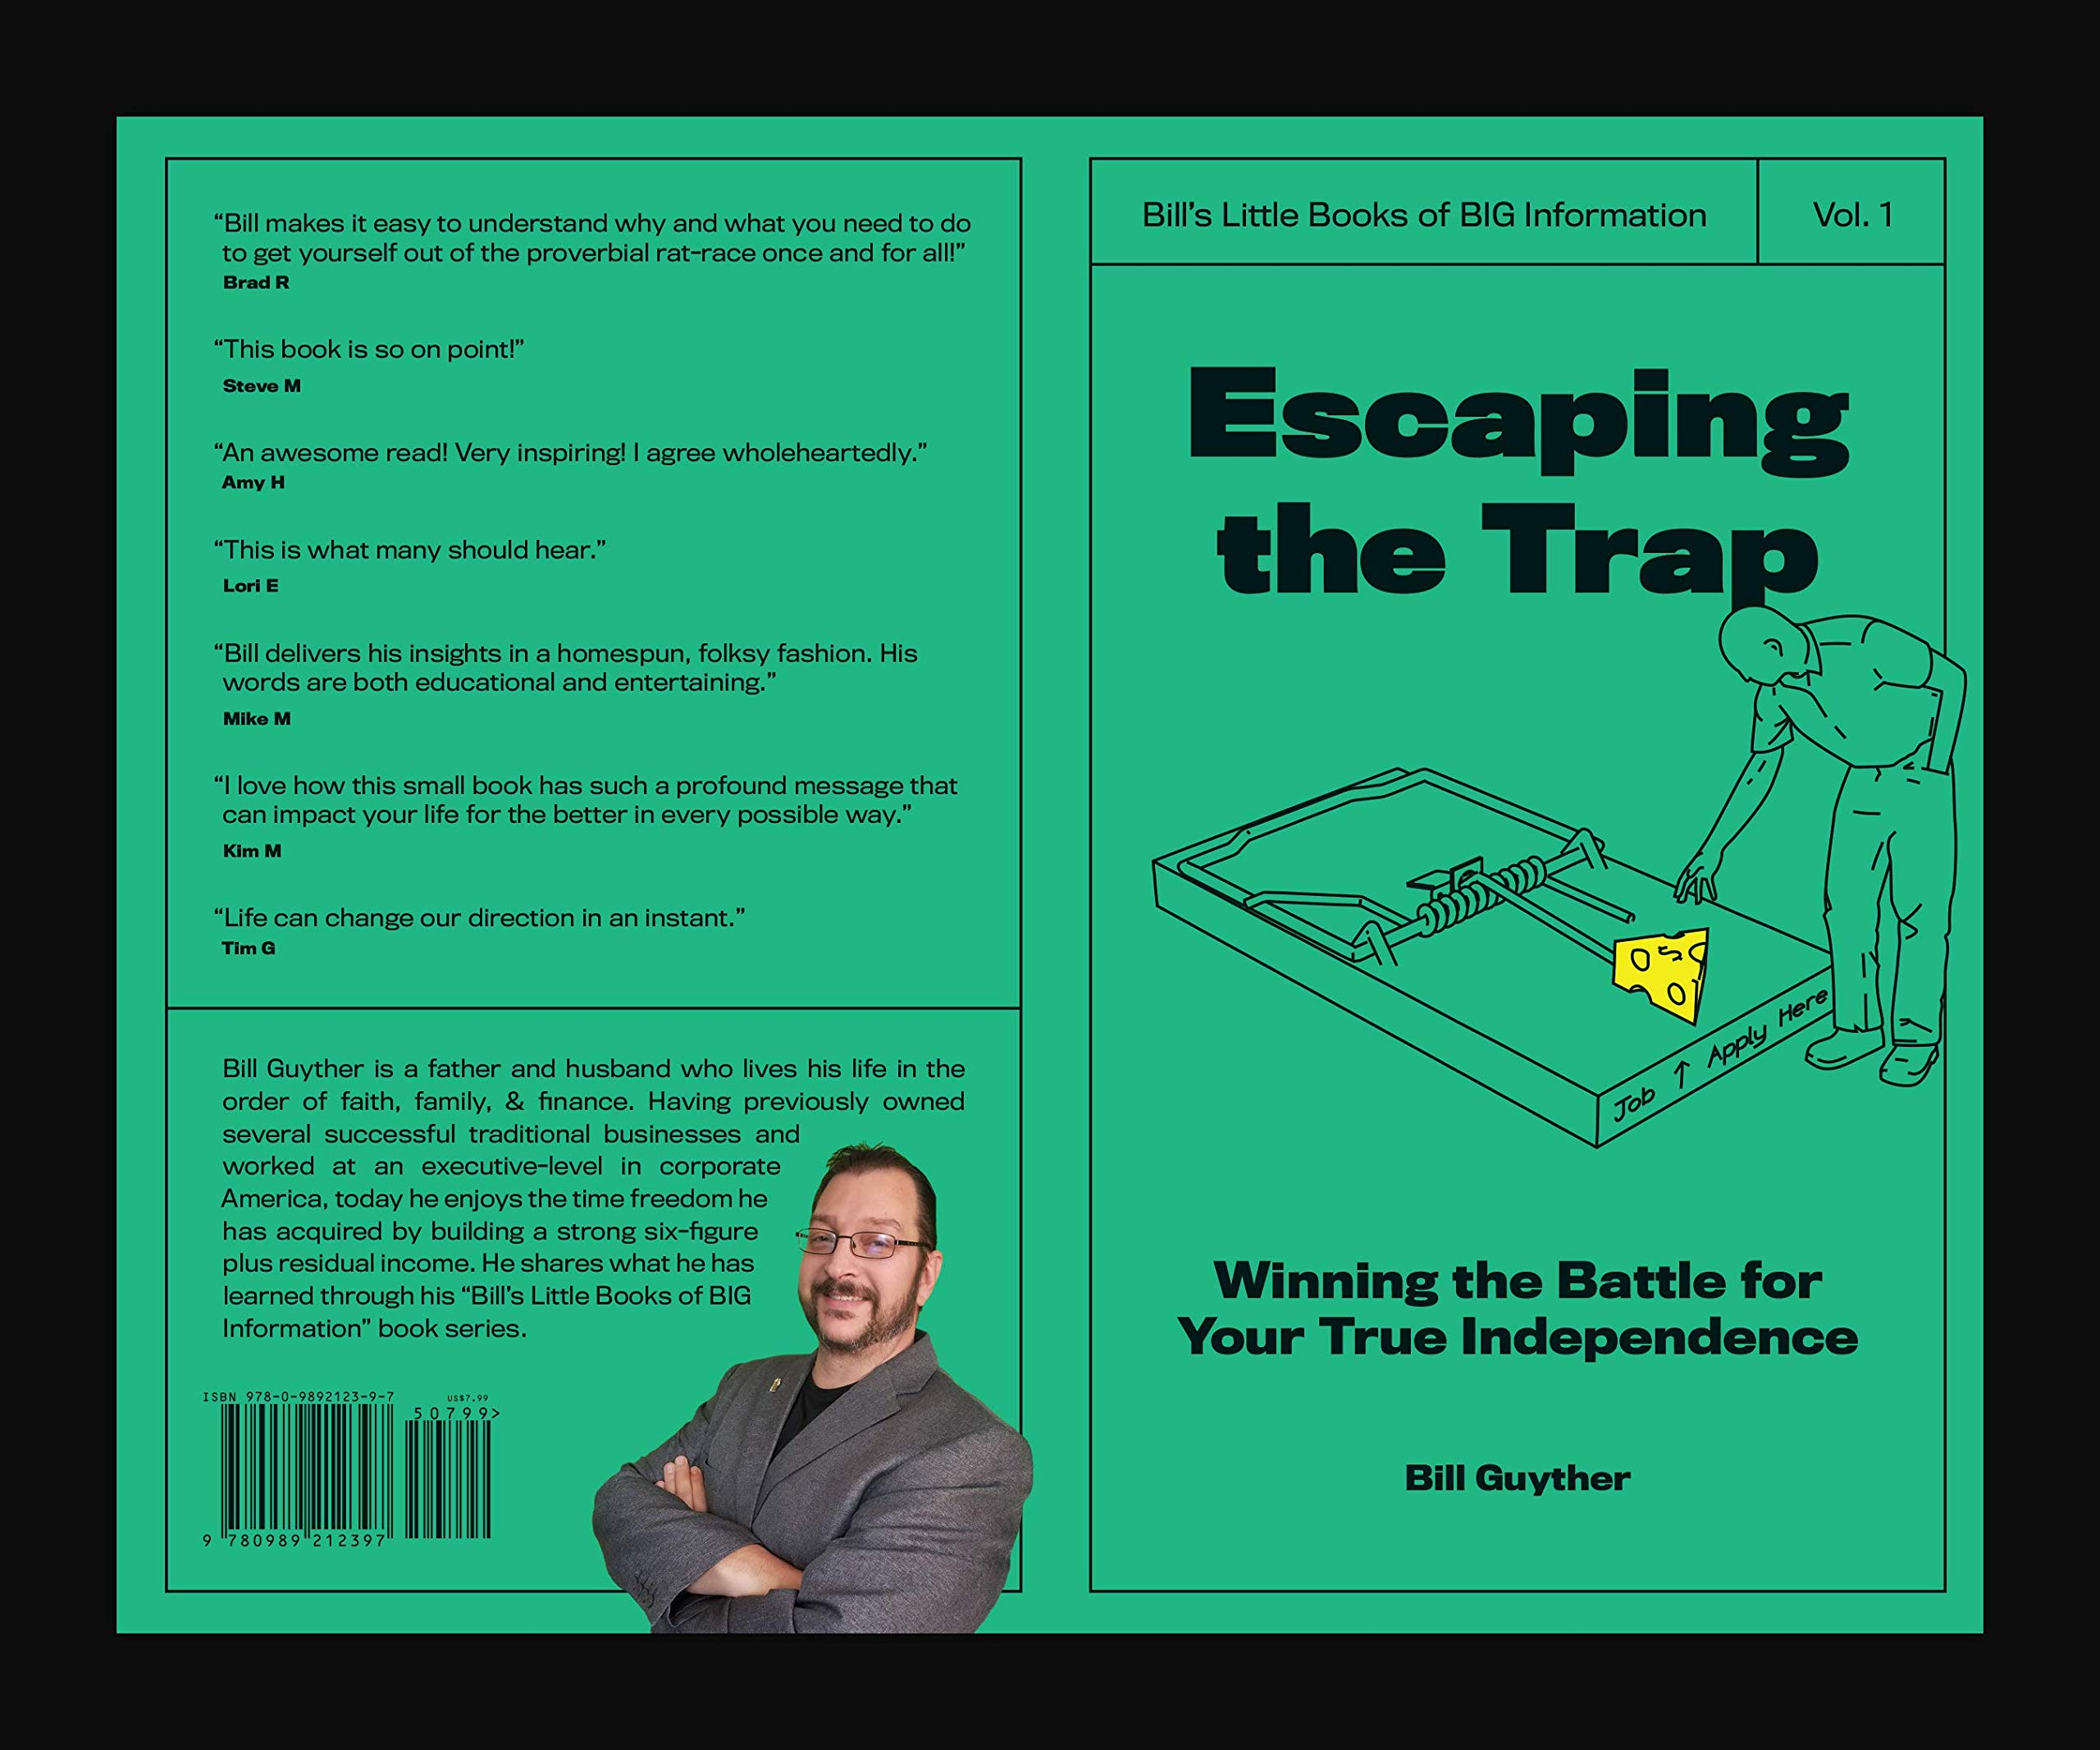 Escaping Disability Trap >> Escaping The Trap Bill Guyther 9780989212397 Amazon Com Books